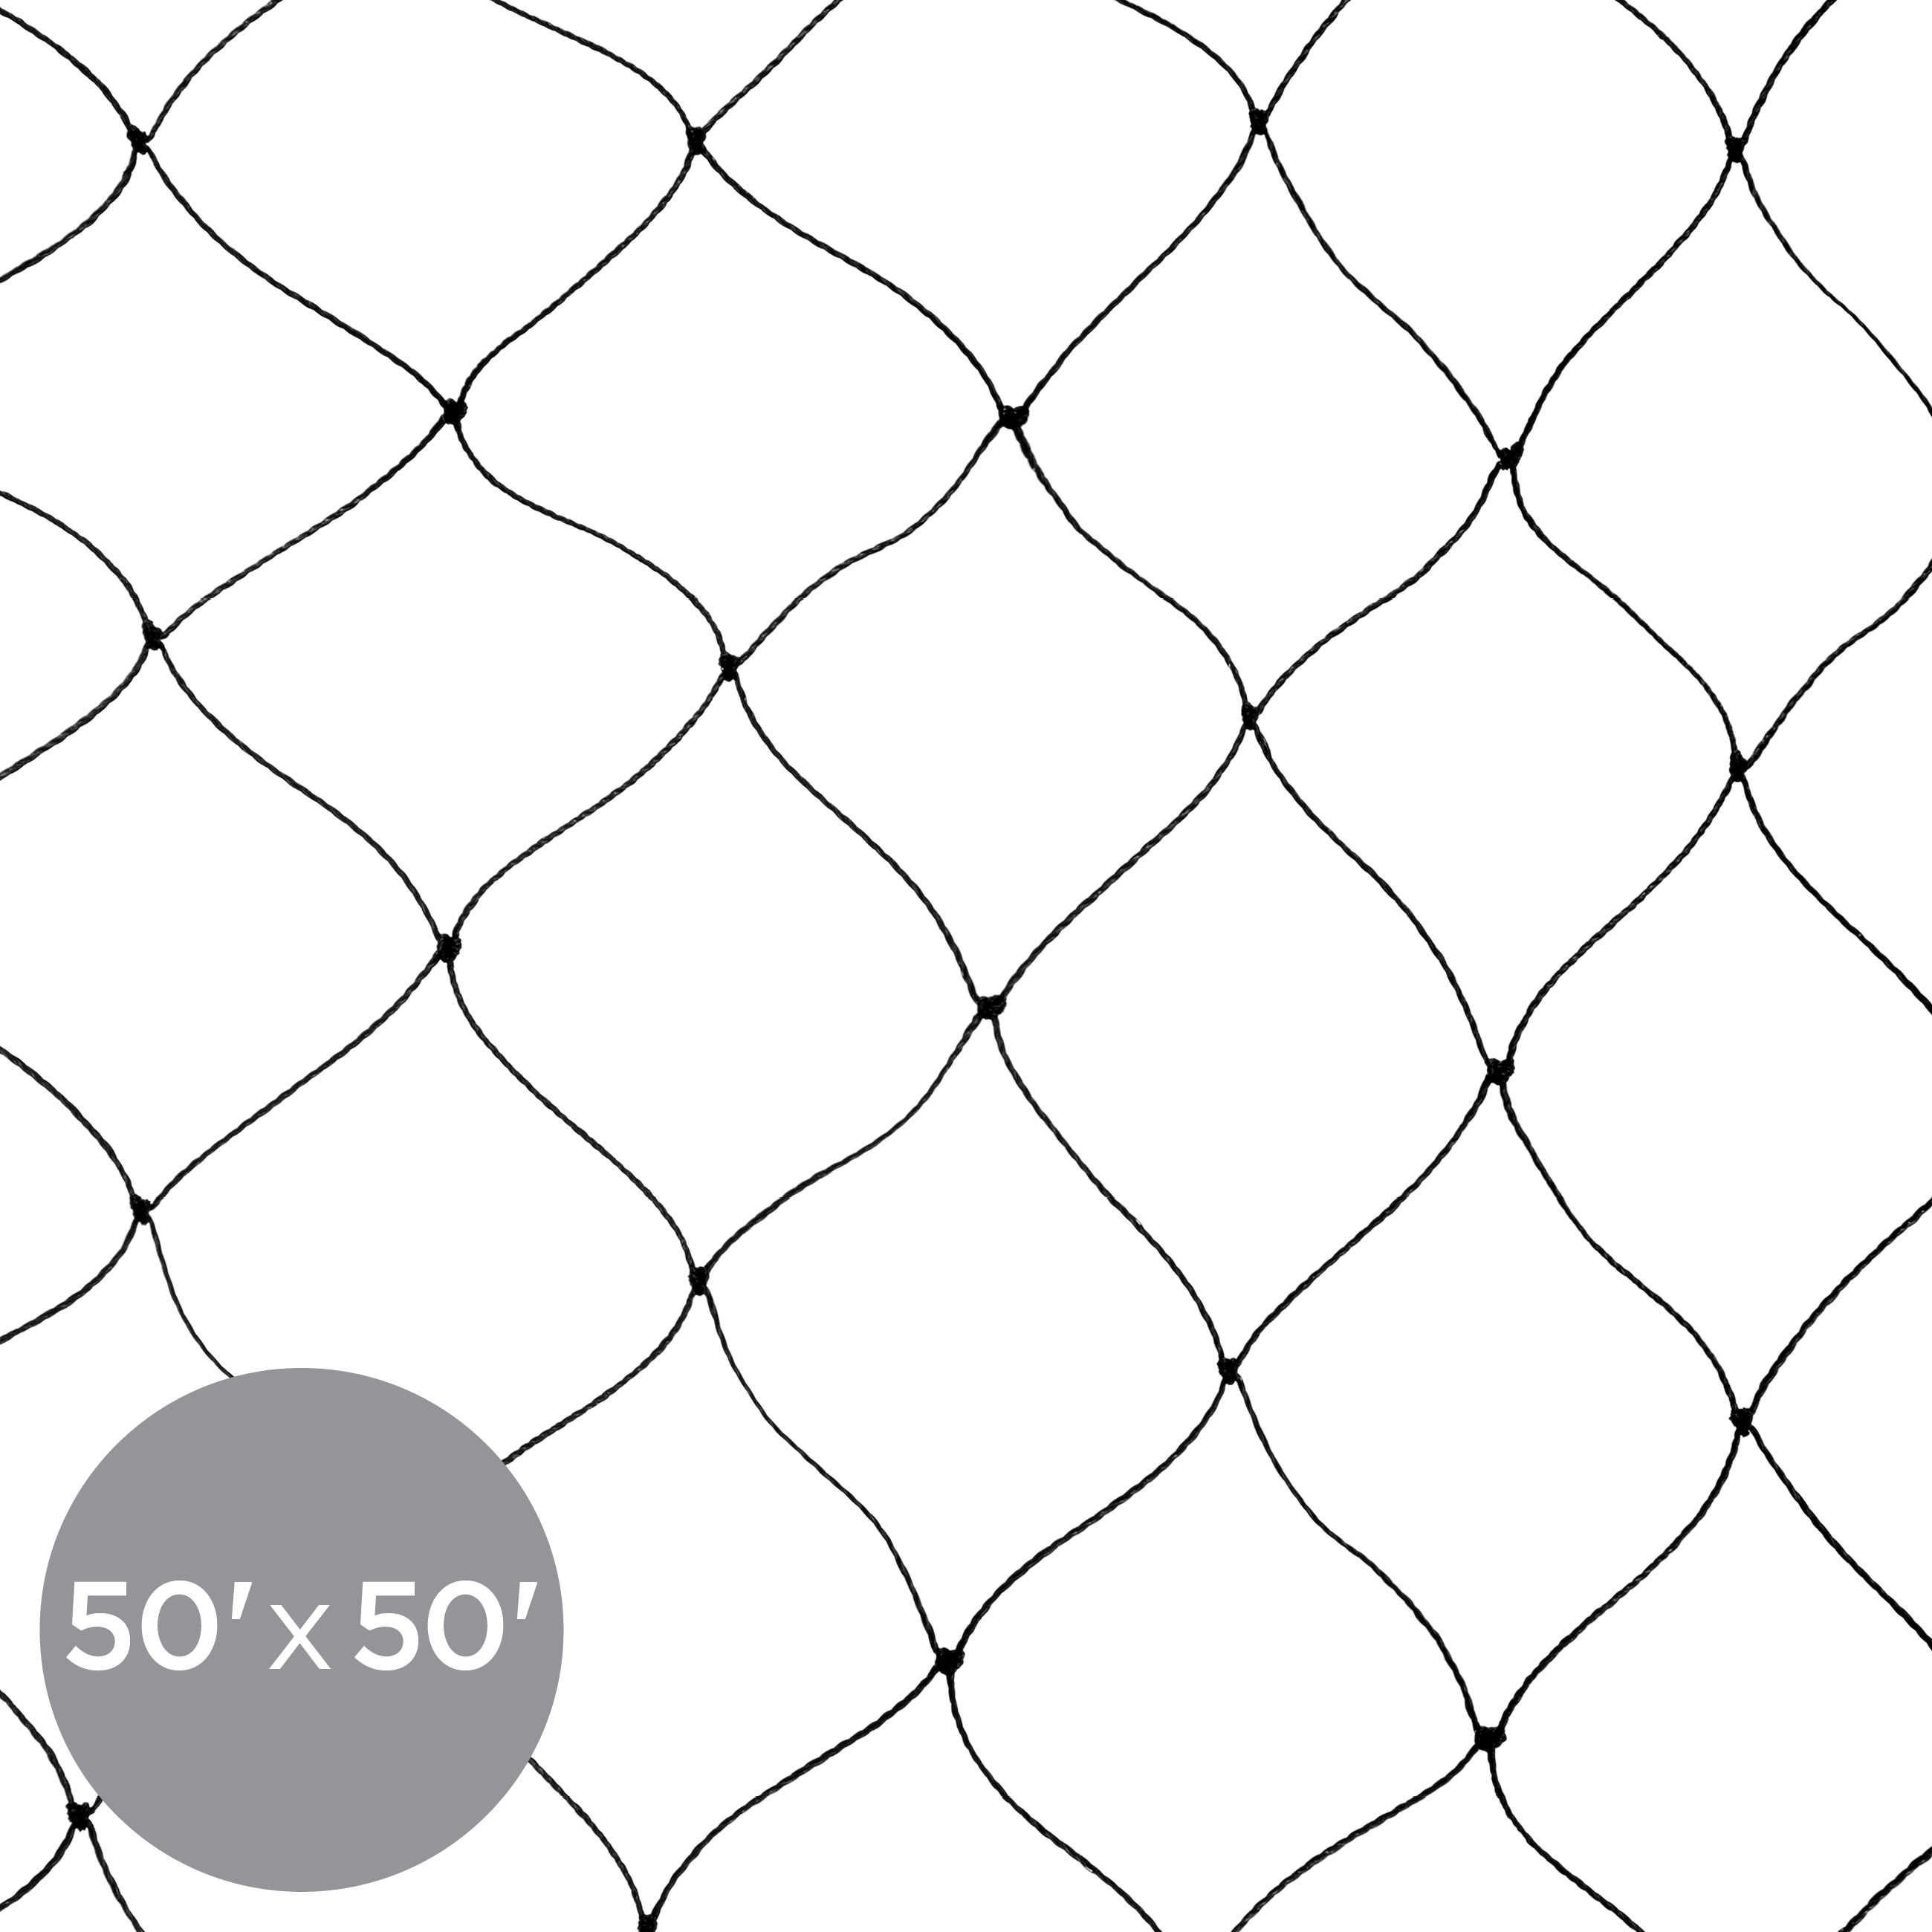 Best Choice Products 50x50ft Multi-Filament Protective Mesh Bird Netting for Birds, Poultry, Game, and Pens - Black